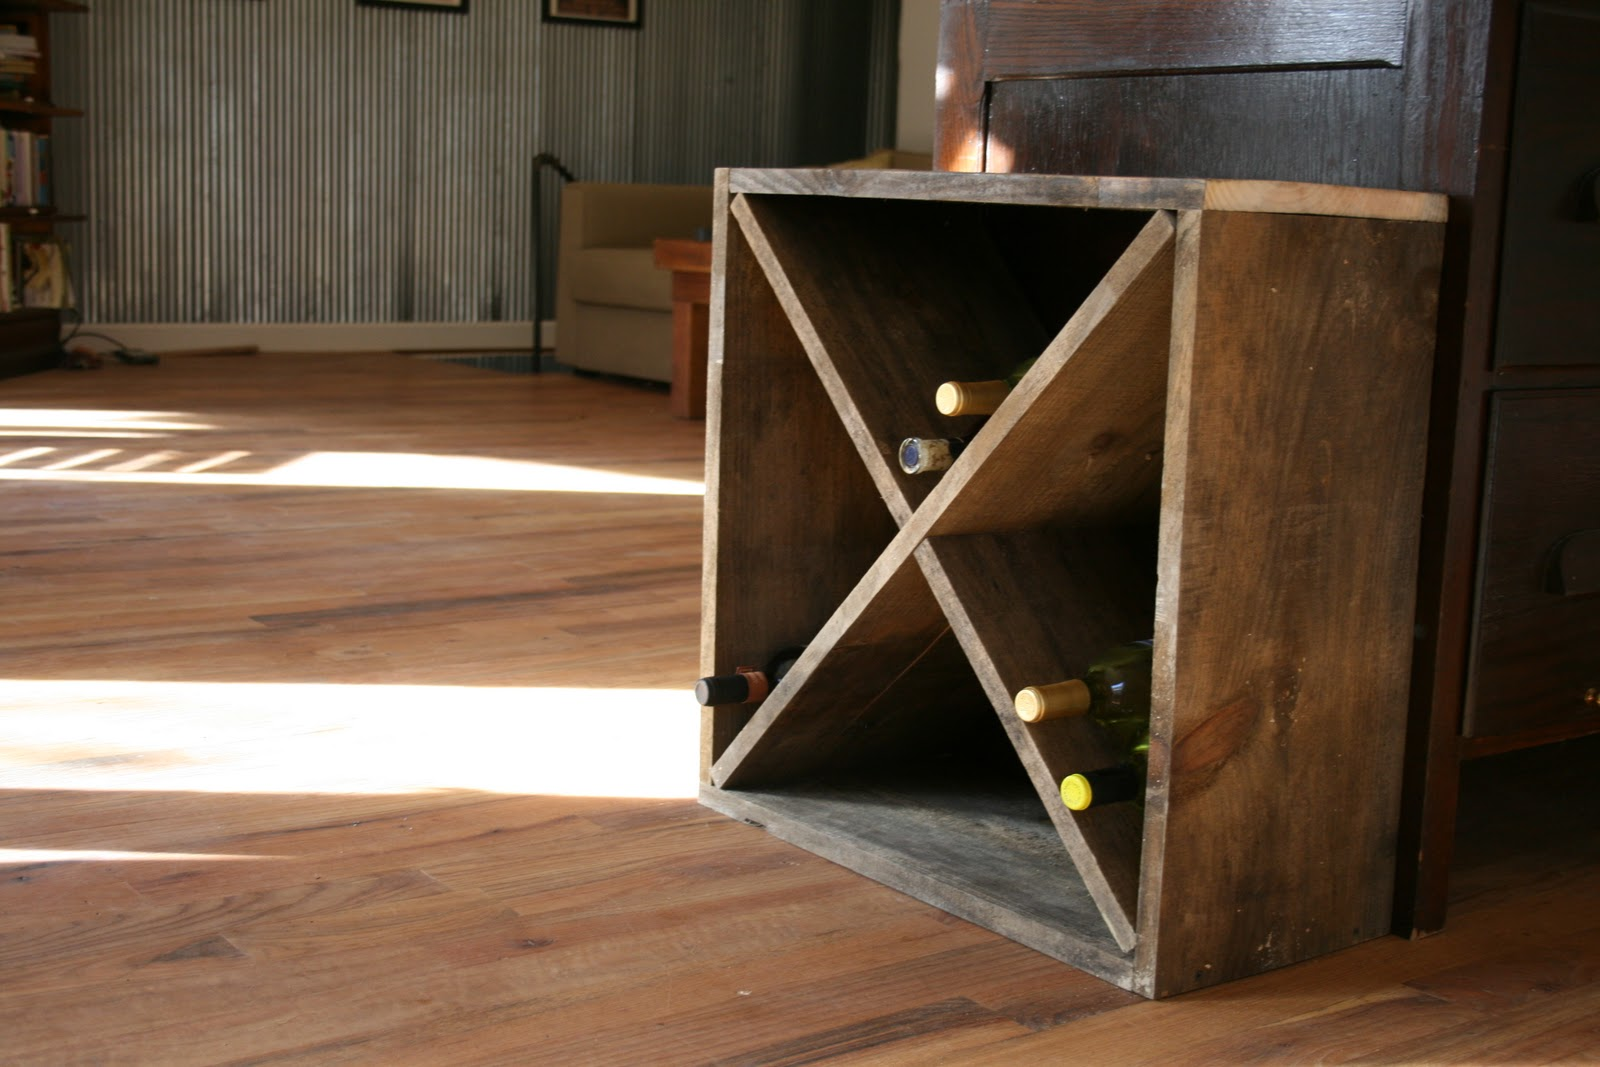 Slide Your Inside Pieces Together And Then Put Them In Wooden Square You Should Now Have A Diamond Shaped Wine Rack That Holds About 45 50 Bottles